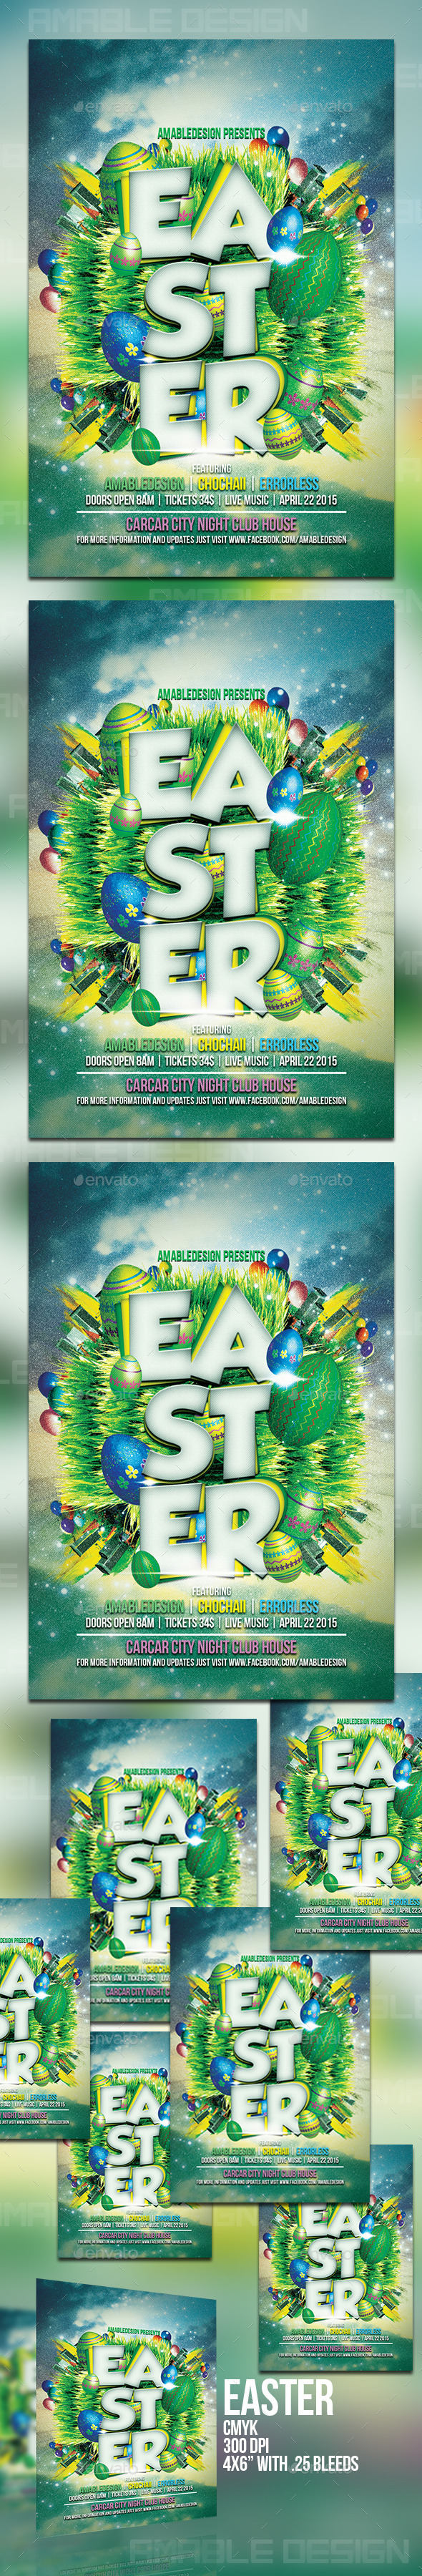 GraphicRiver Easter Flyer 10642356